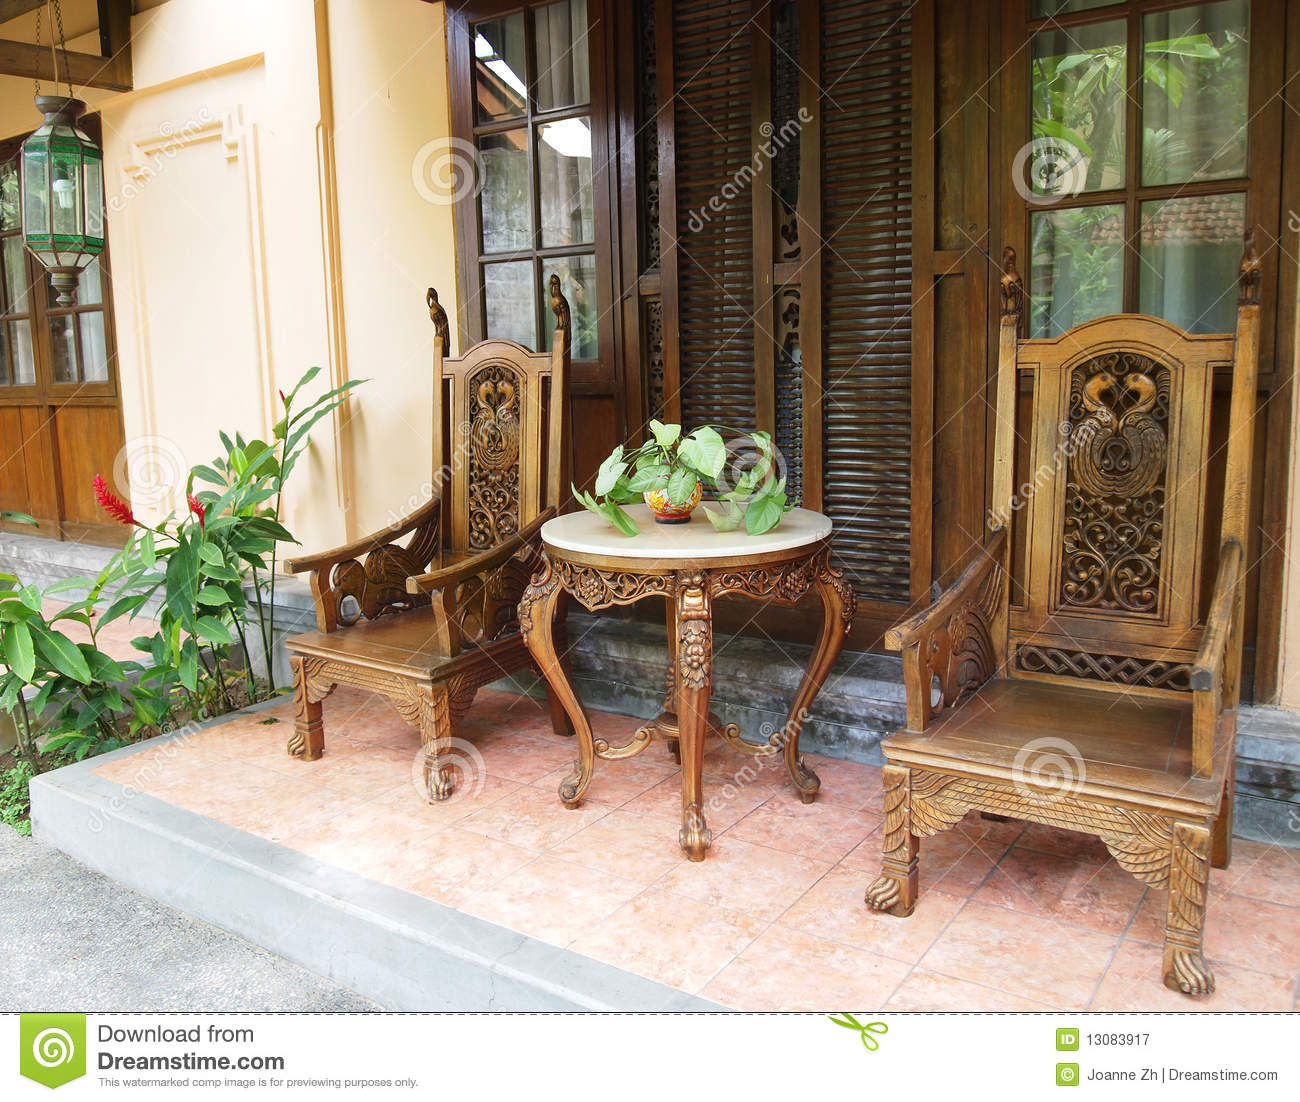 Balinese Furniture On Patio Royalty Free Stock Photography ...